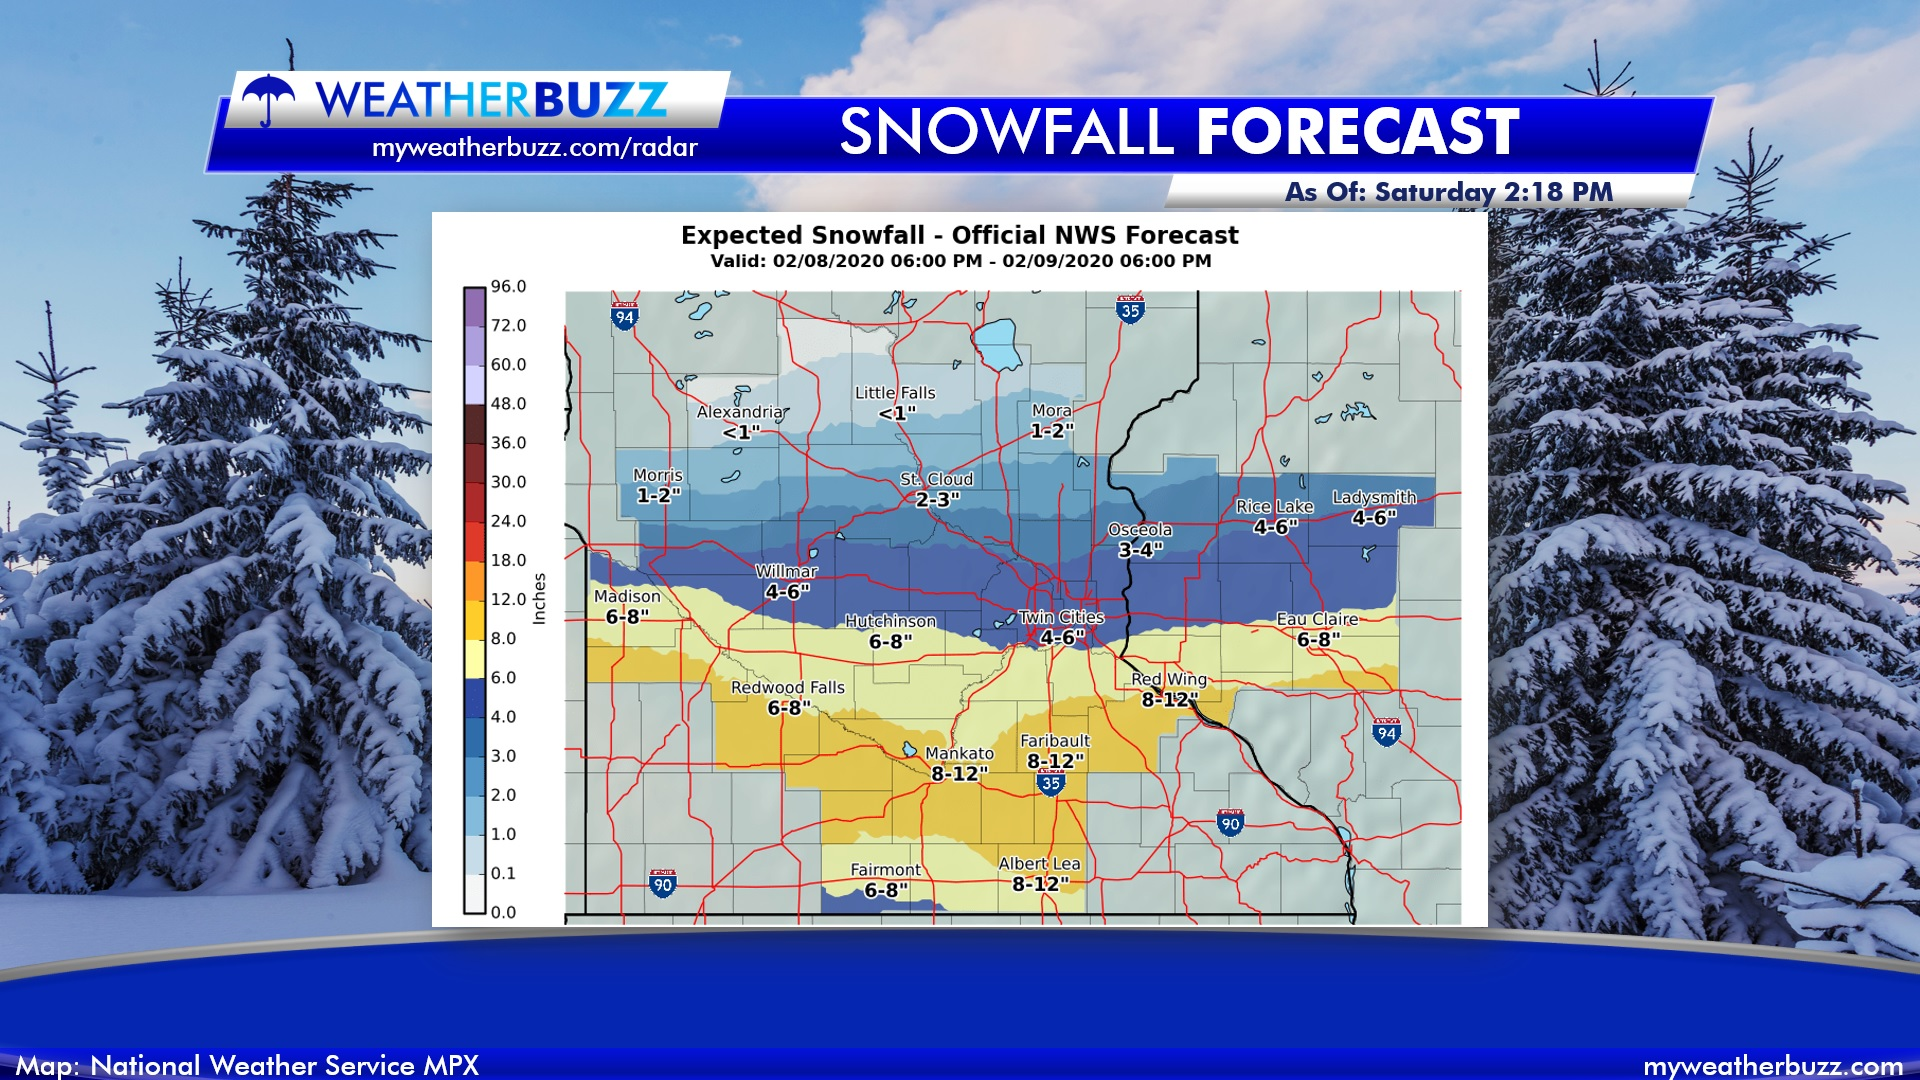 National Weather Service Expected Snow Totals Forecast